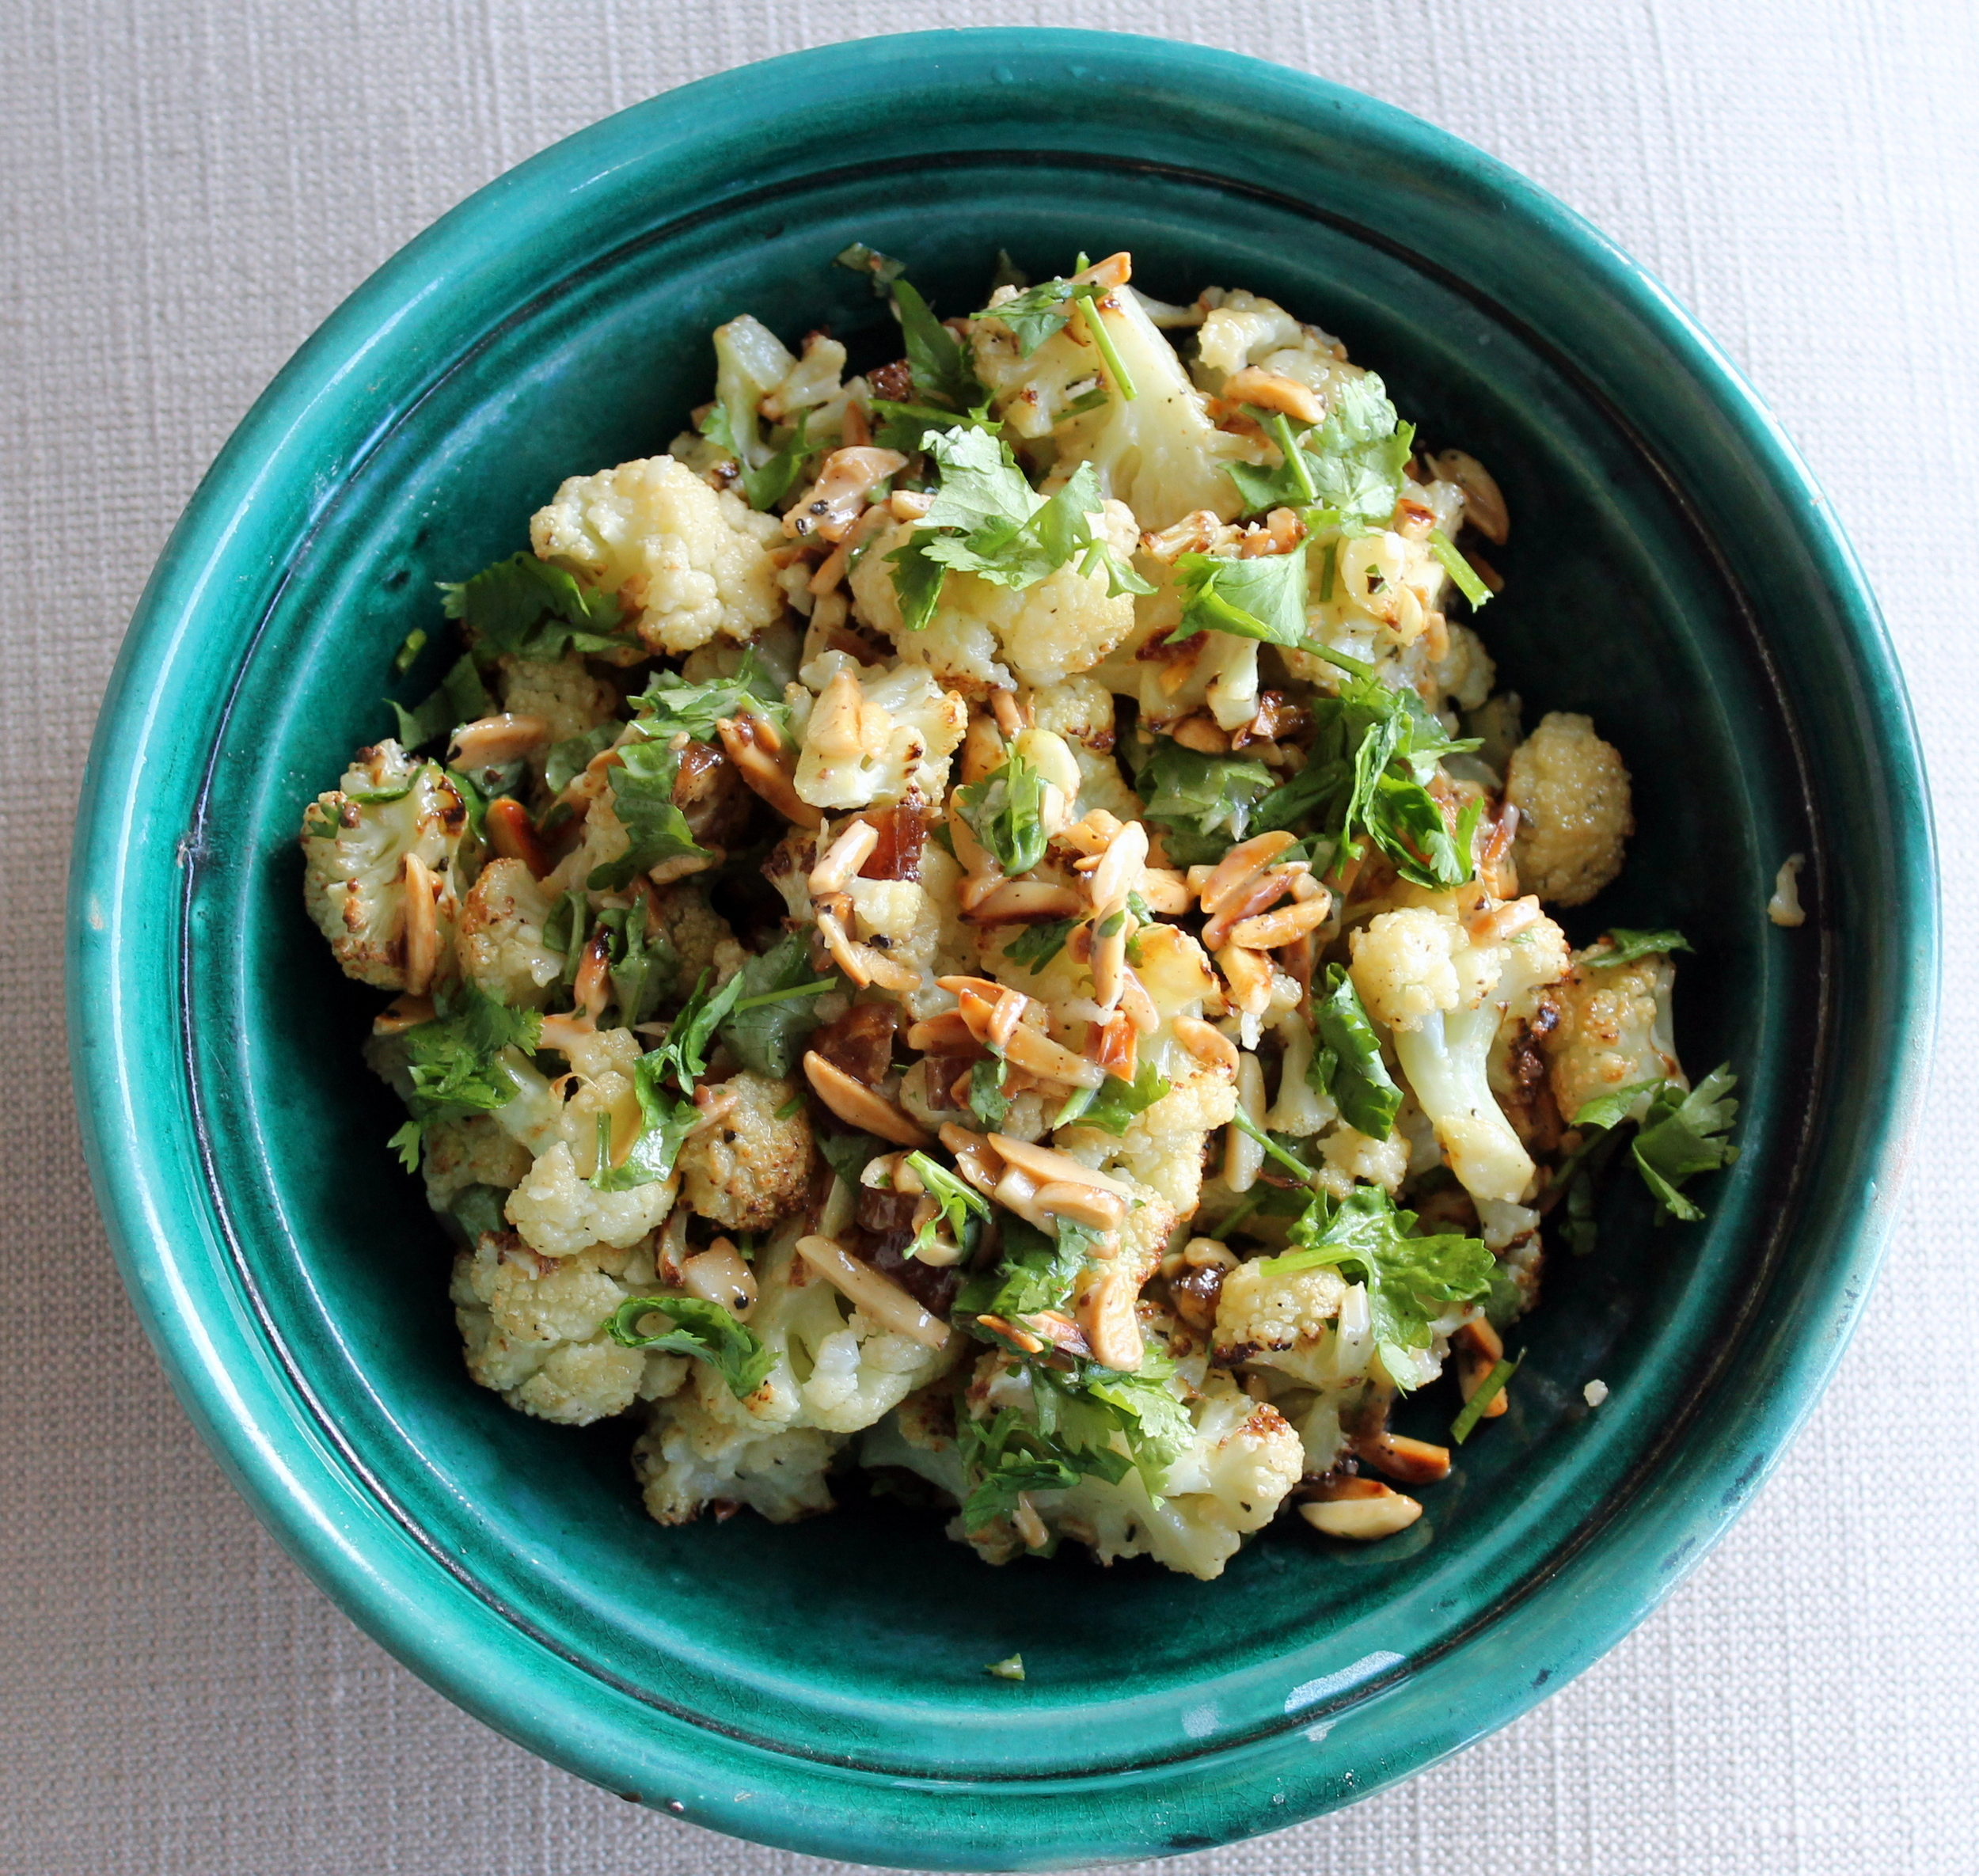 Roasted Cauliflower with Dates, Almonds, and Tahini